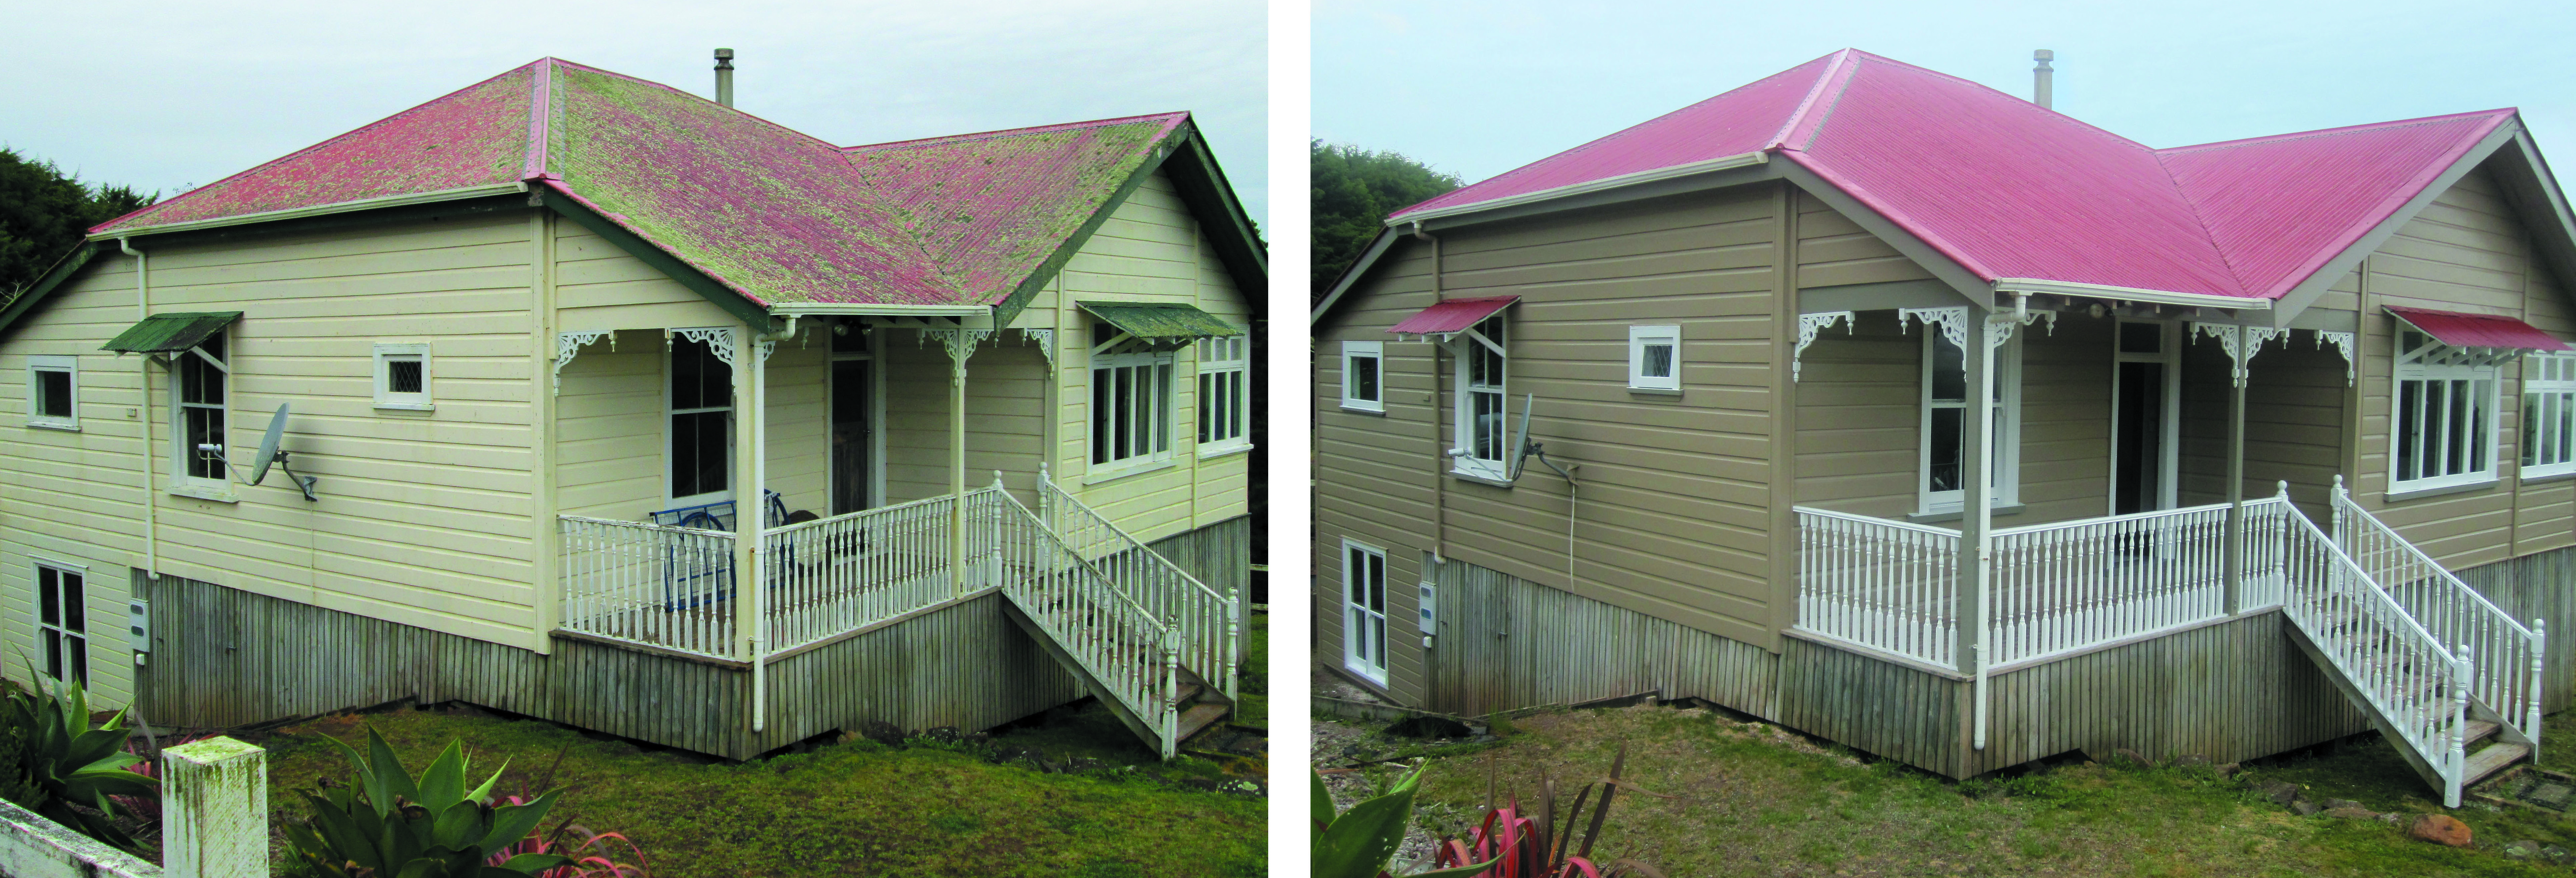 Before and after shots of house in Okaihau by Wayne Webb Painters